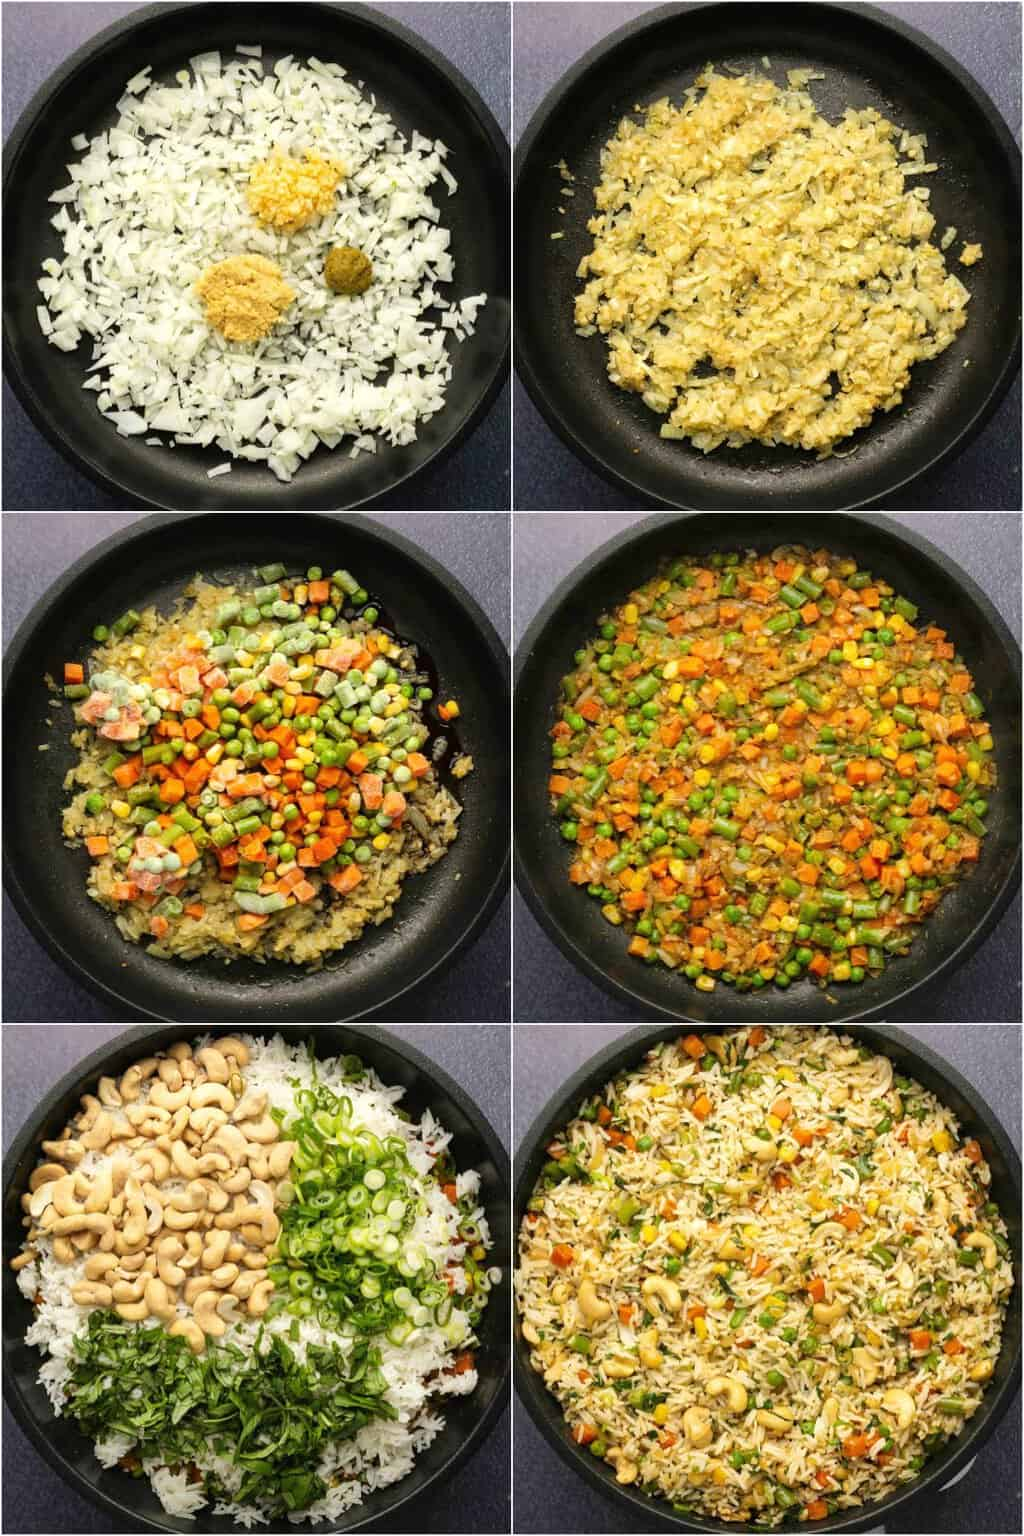 Step by step process photo collage of making vegan fried rice.